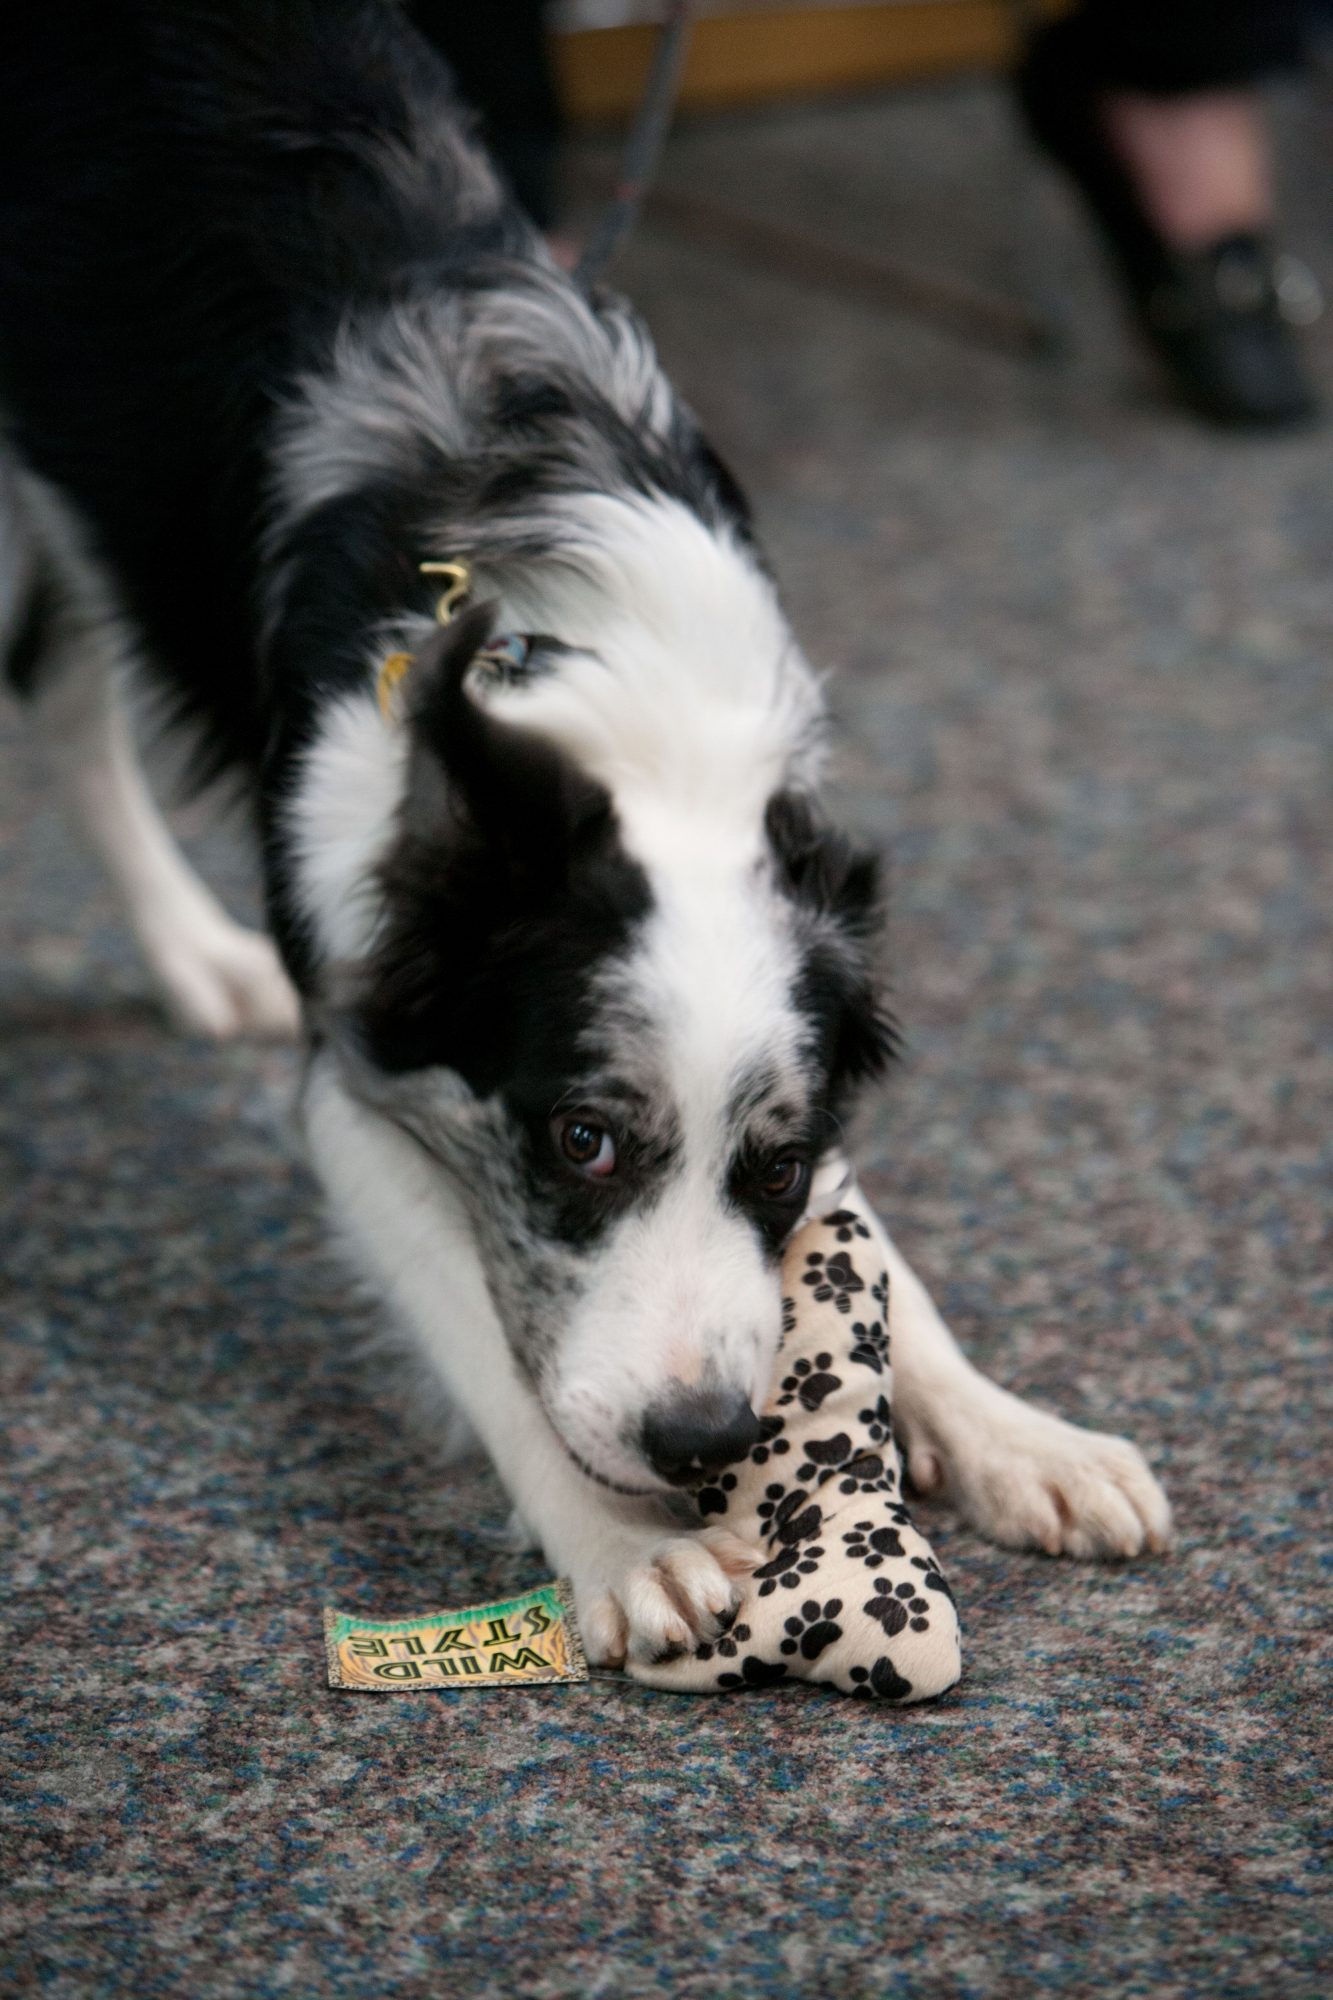 black and white dog with toy